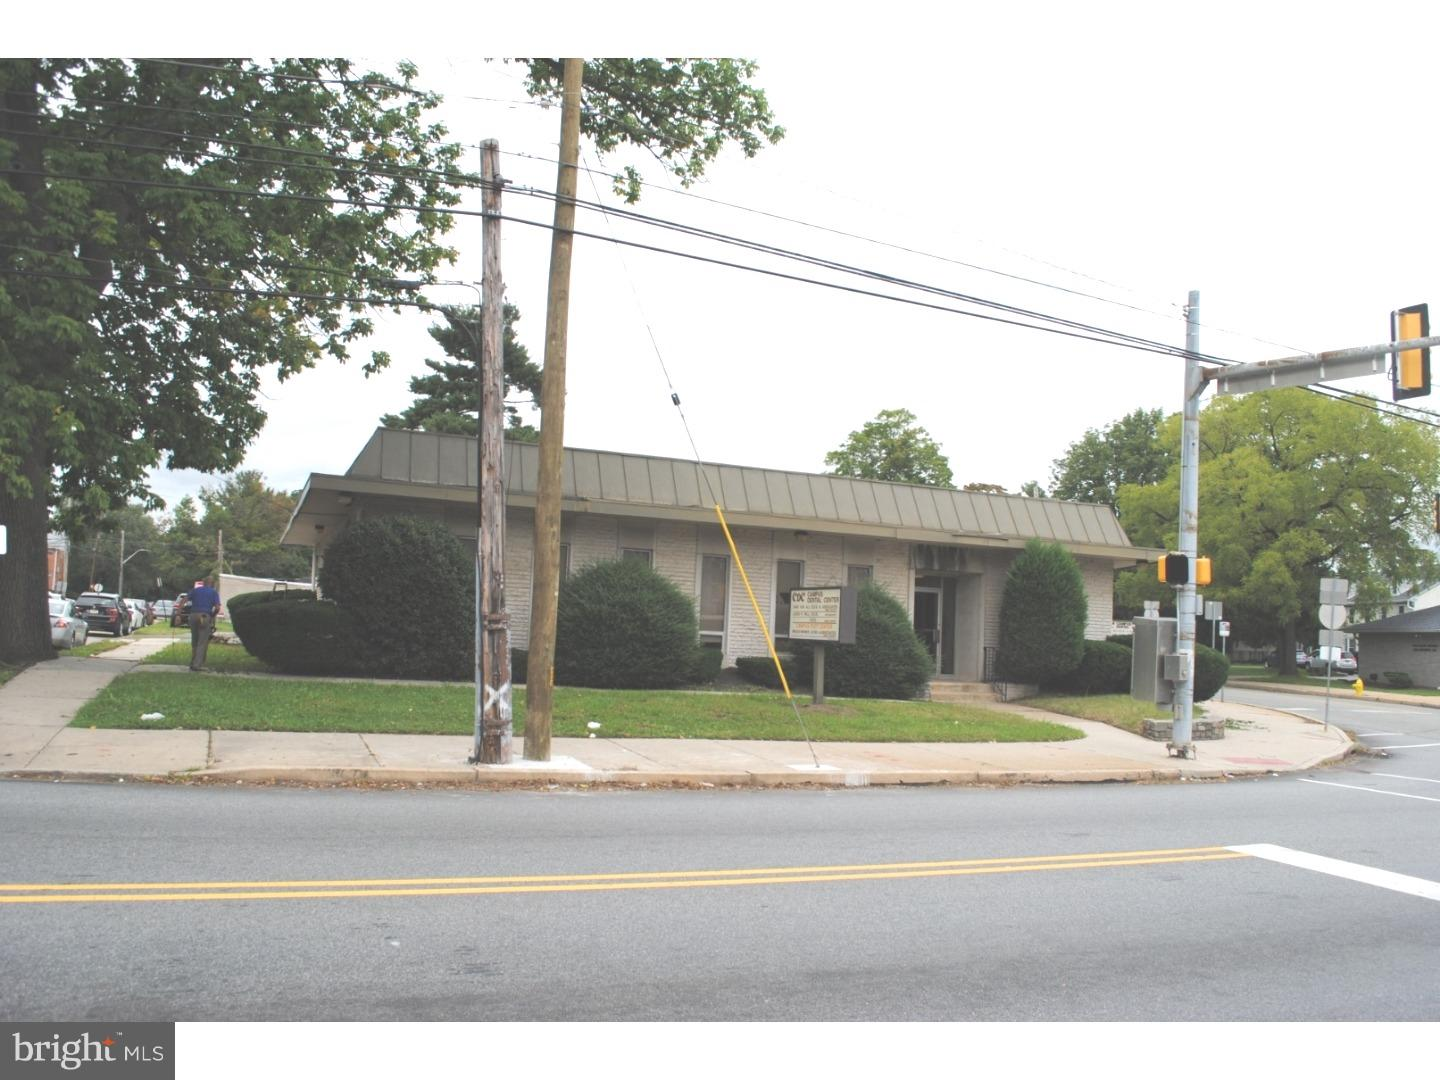 2200 PROVIDENCE AVENUE, CHESTER, PA 19013